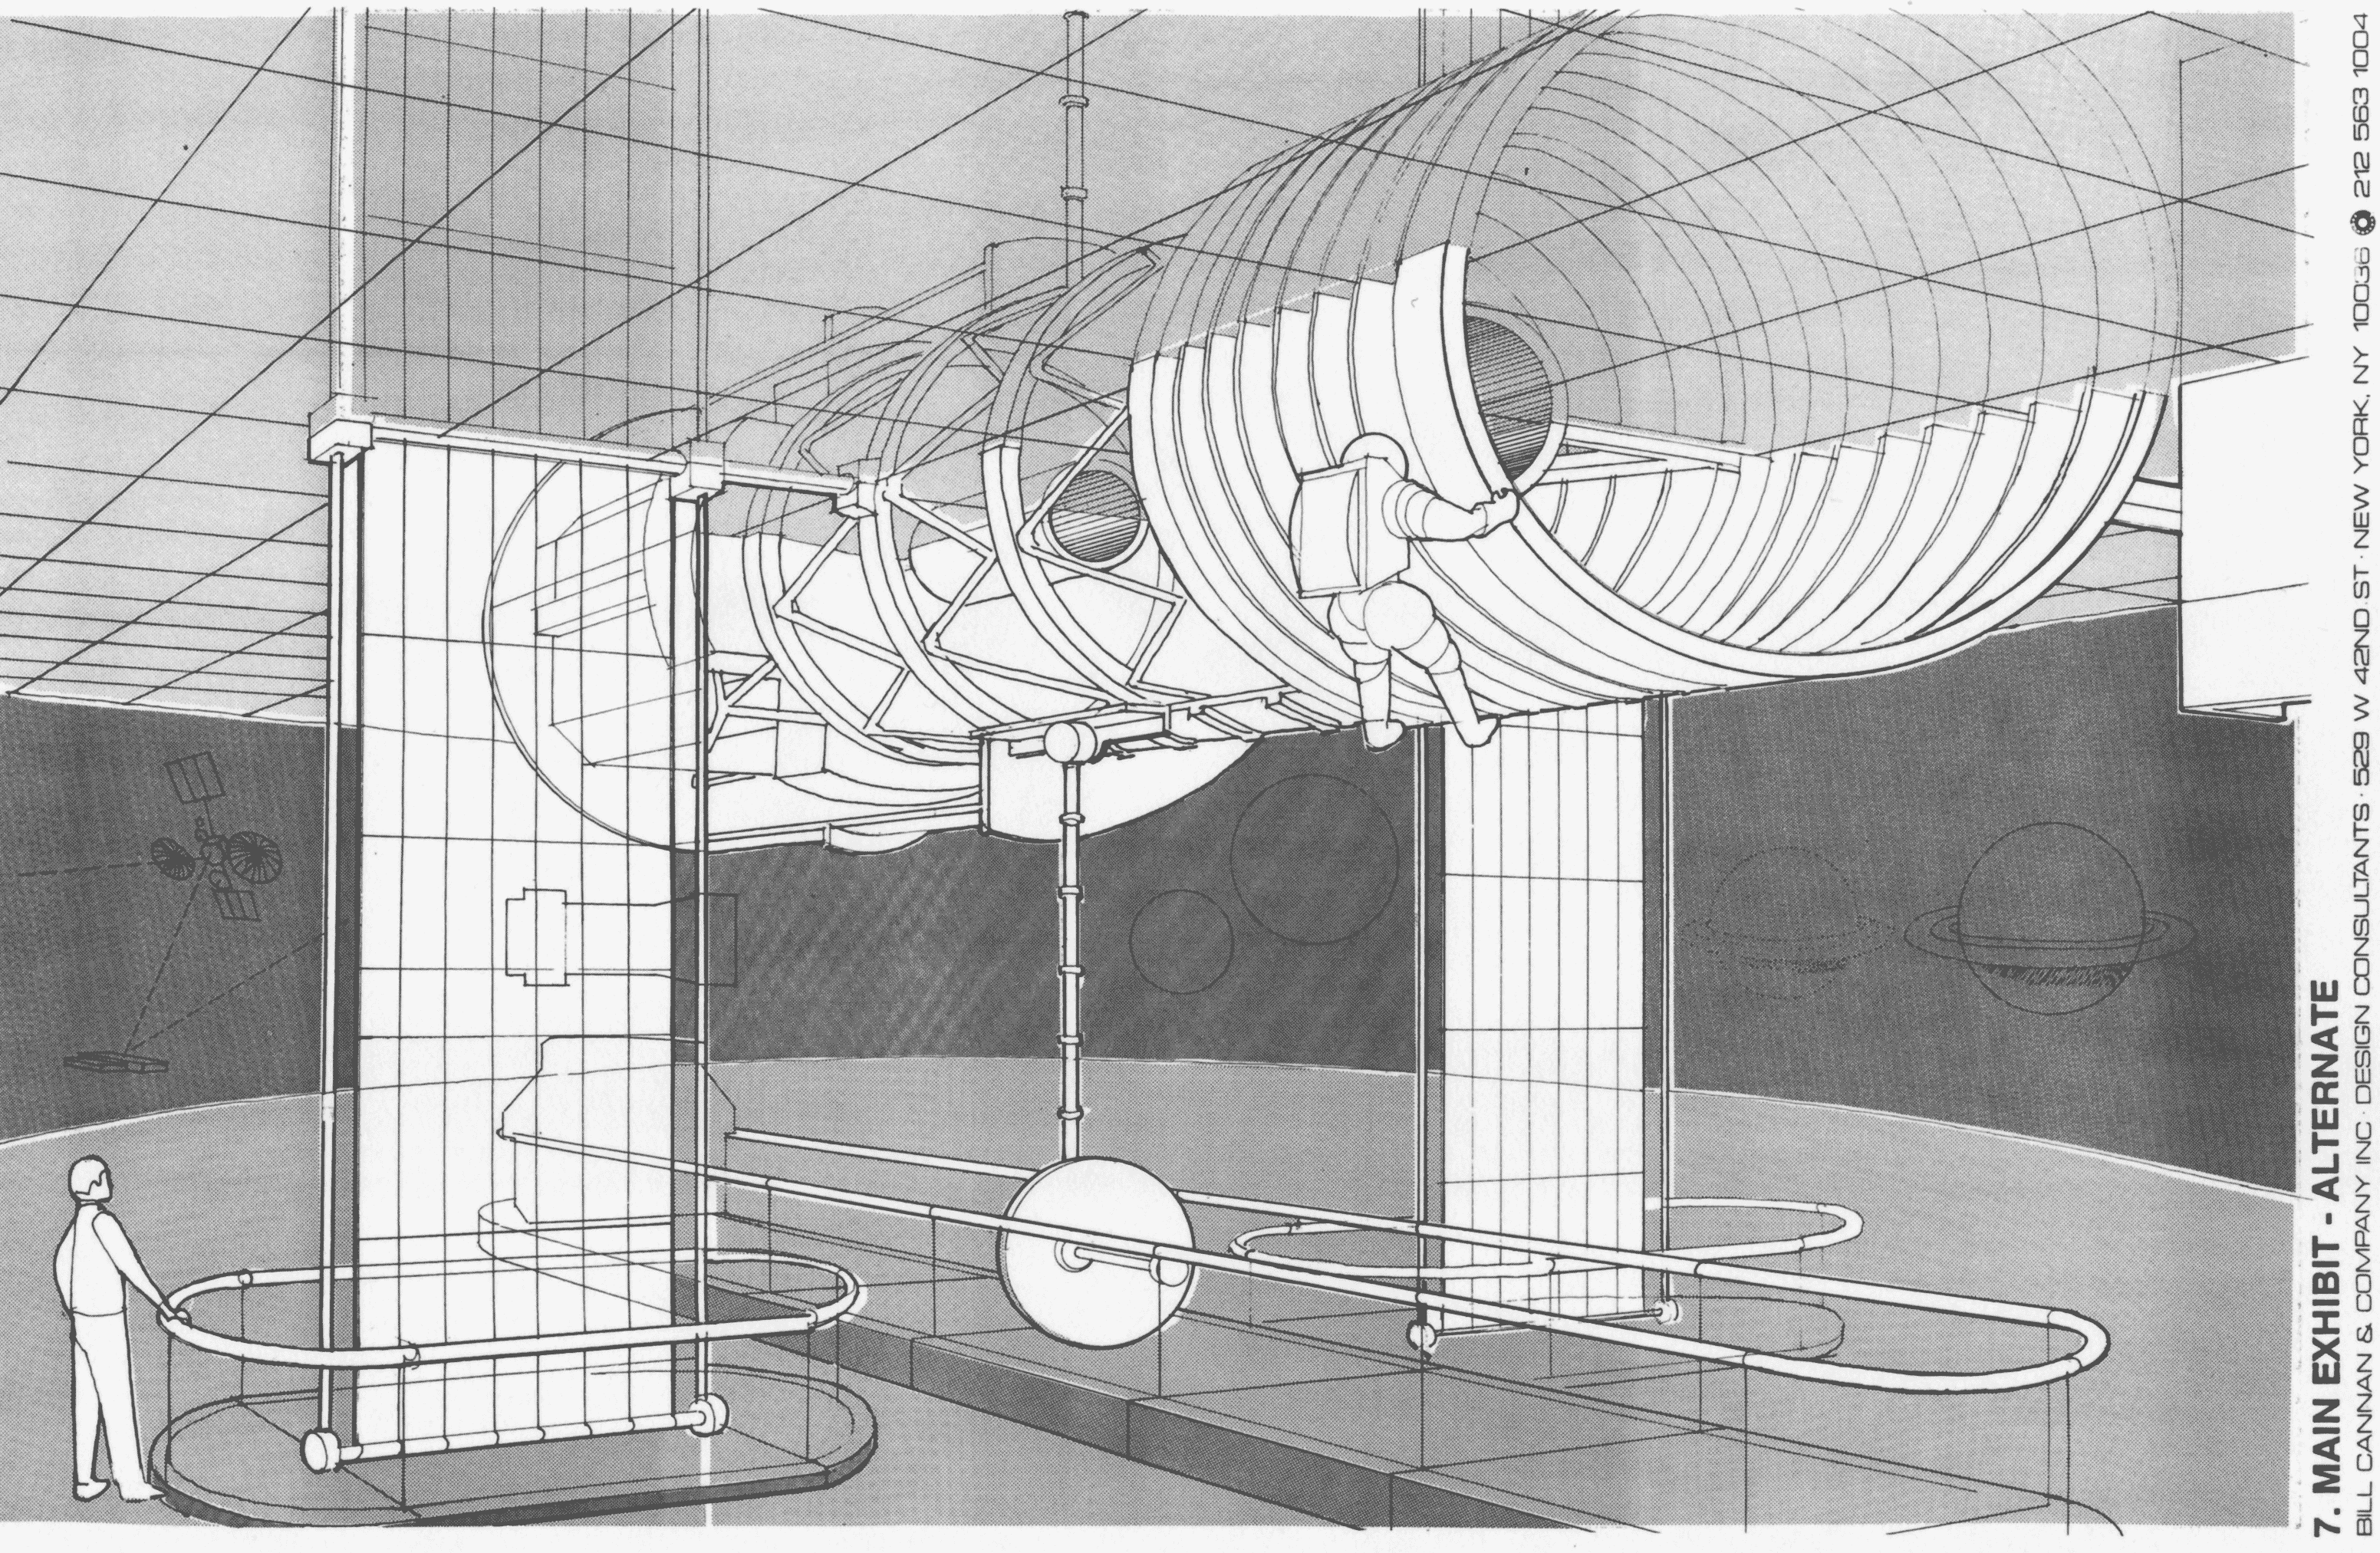 Drawing of ceiling proposal